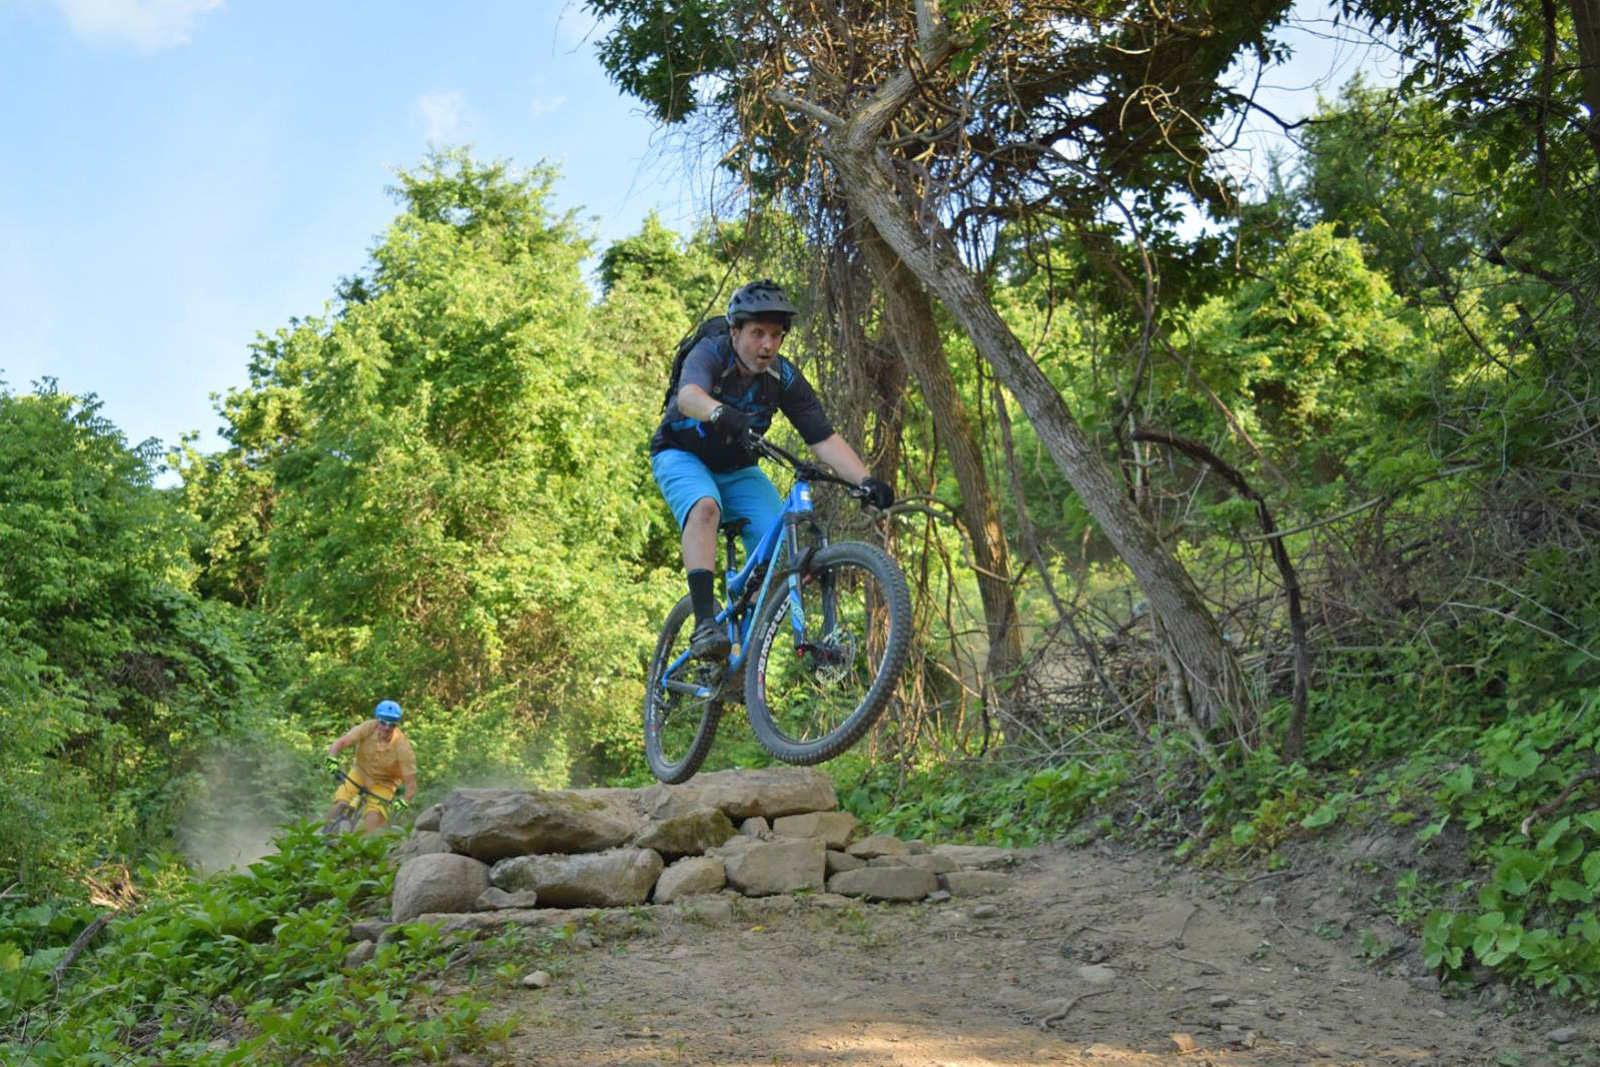 Riders on the Mountain Bike Trail at Chestnut Ridge during COMBO event.